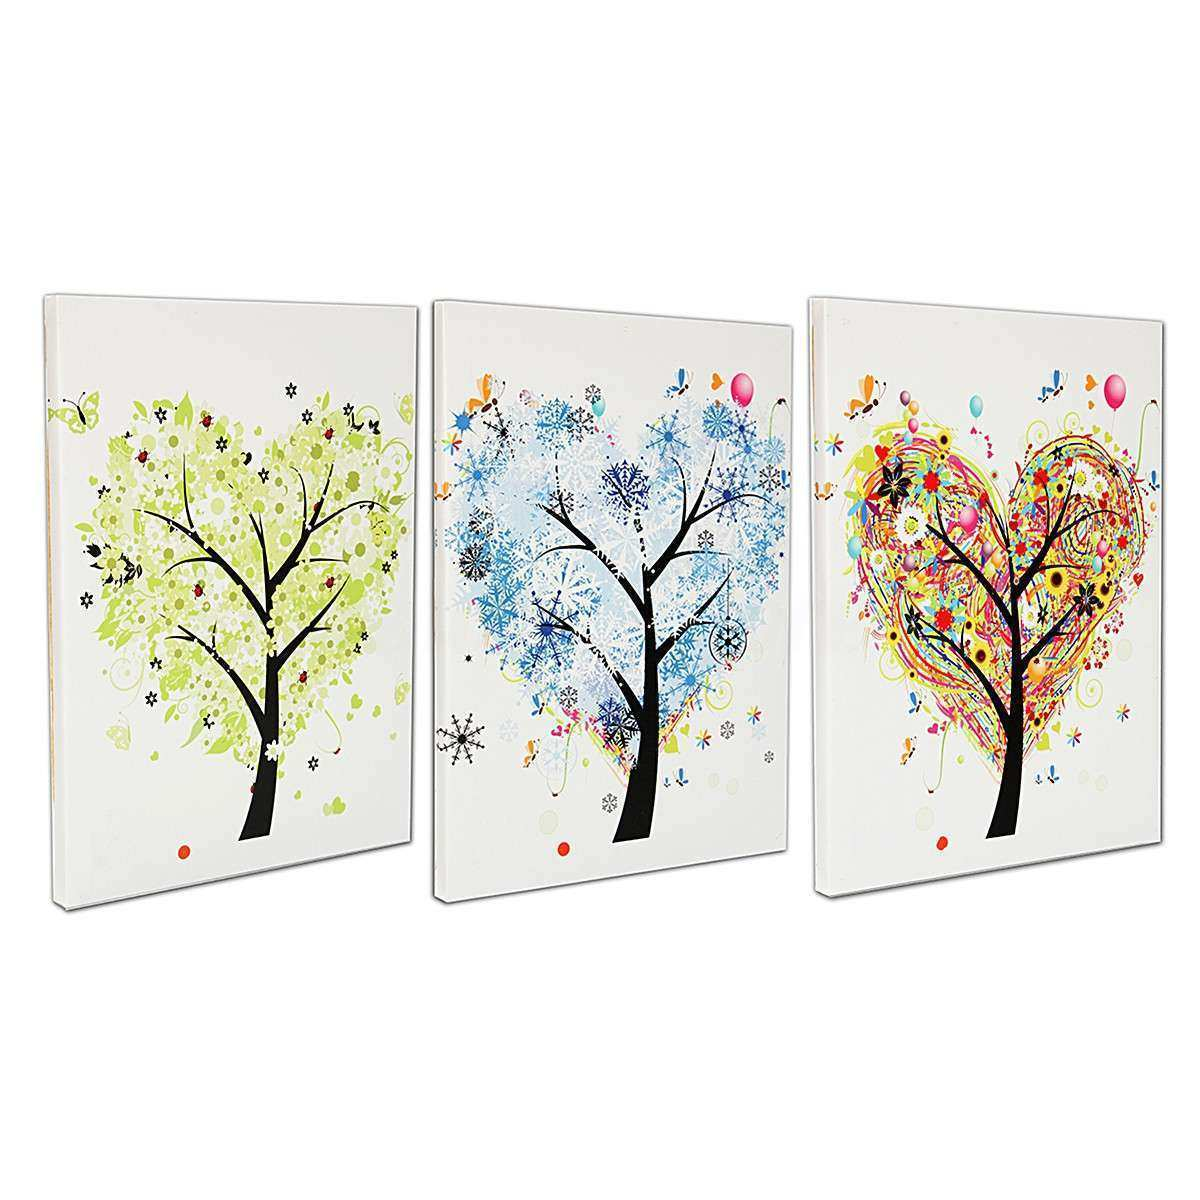 40x30cm LED Luminous Tree Lighted Canvas Painting Art Wall